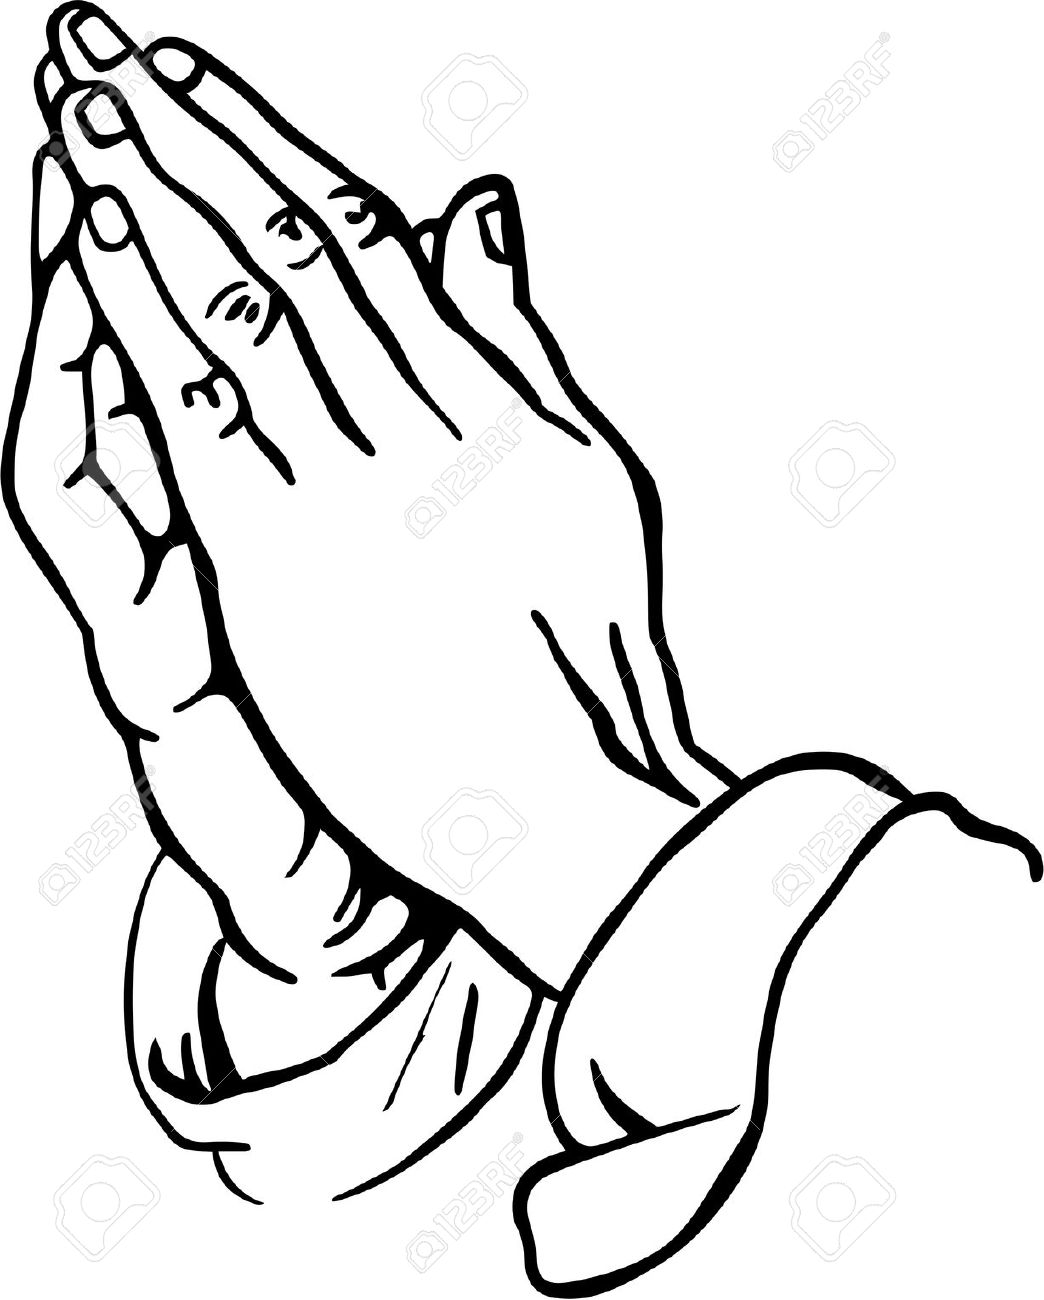 praying hands clipart stock photo picture and royalty free image rh 123rf com prayer clipart black and white prayer clip art for kids